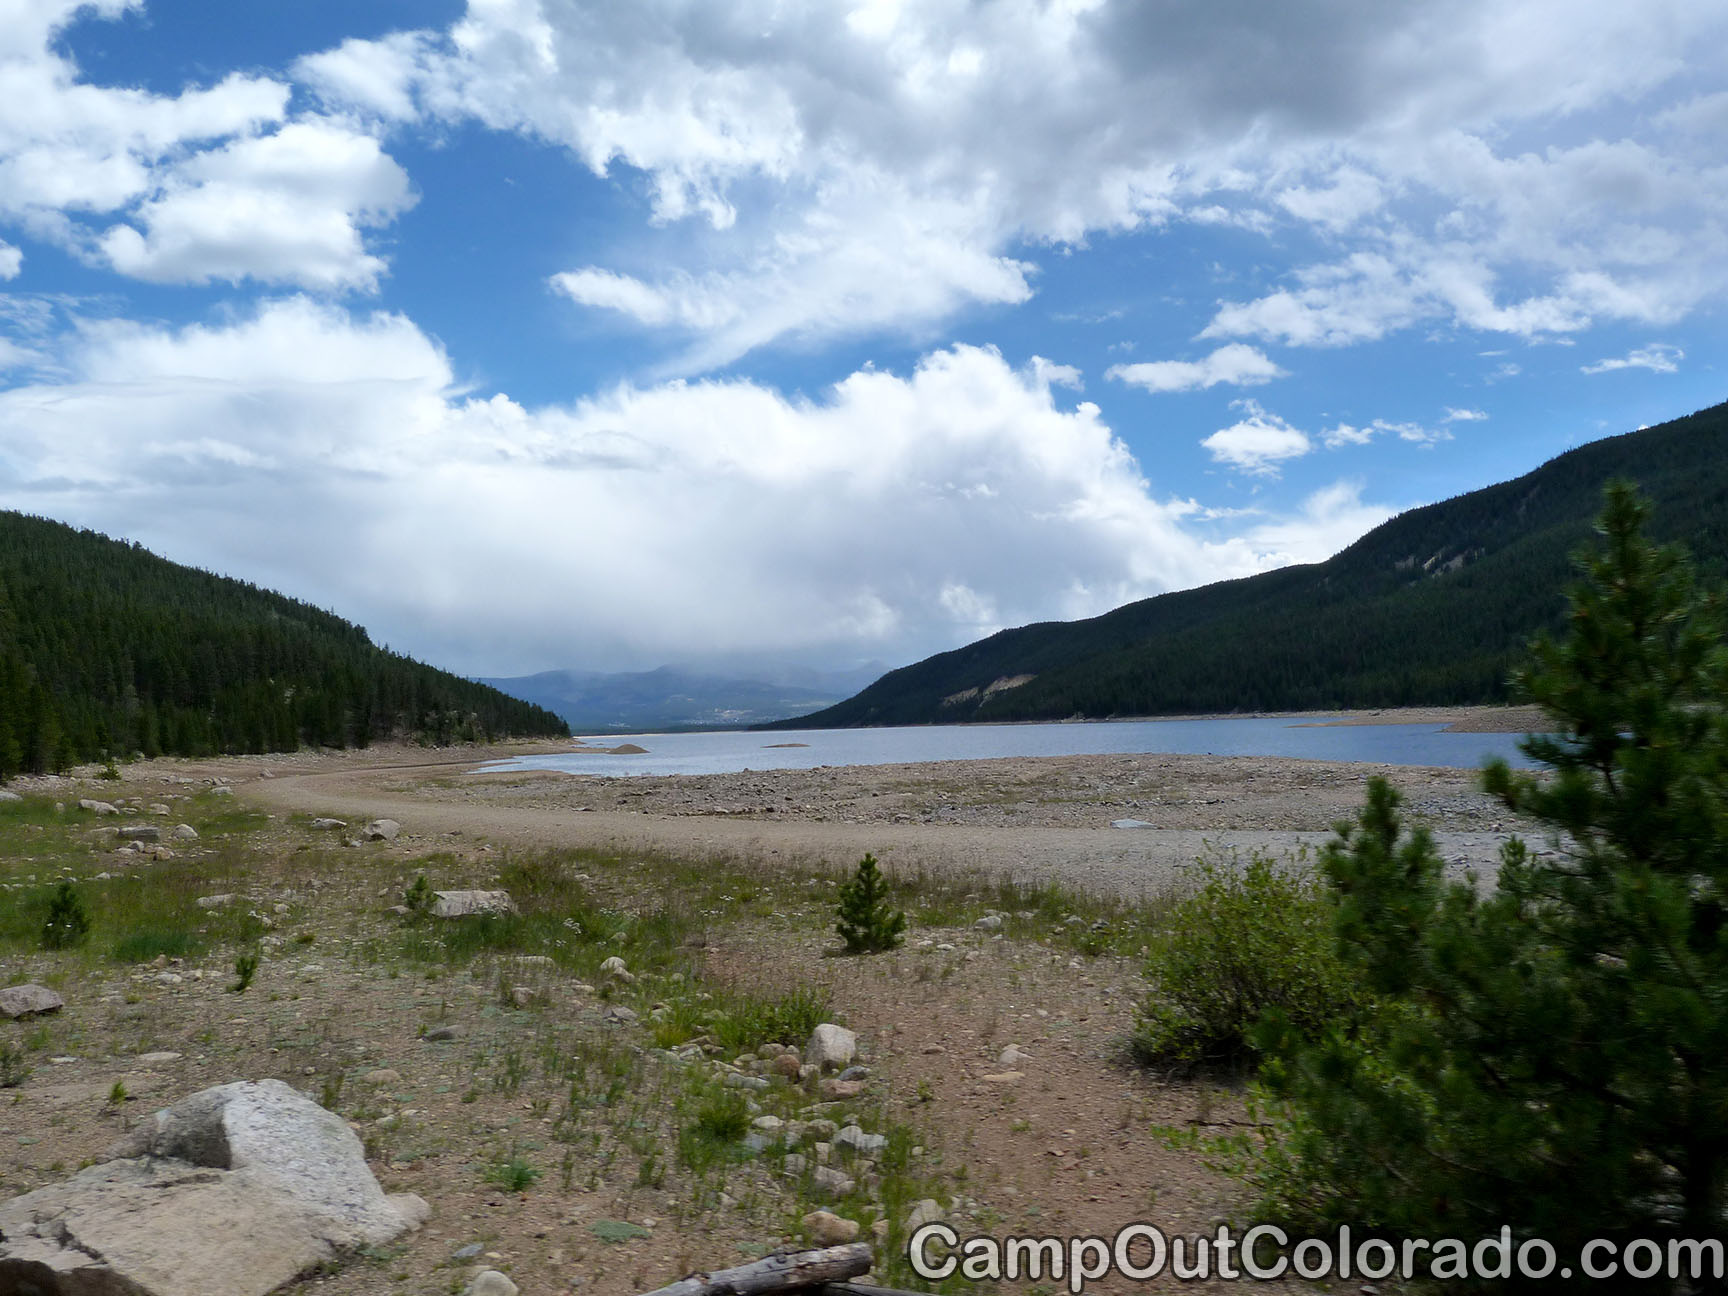 Camp-out-colorado-turquoise-lake-inlet-shore